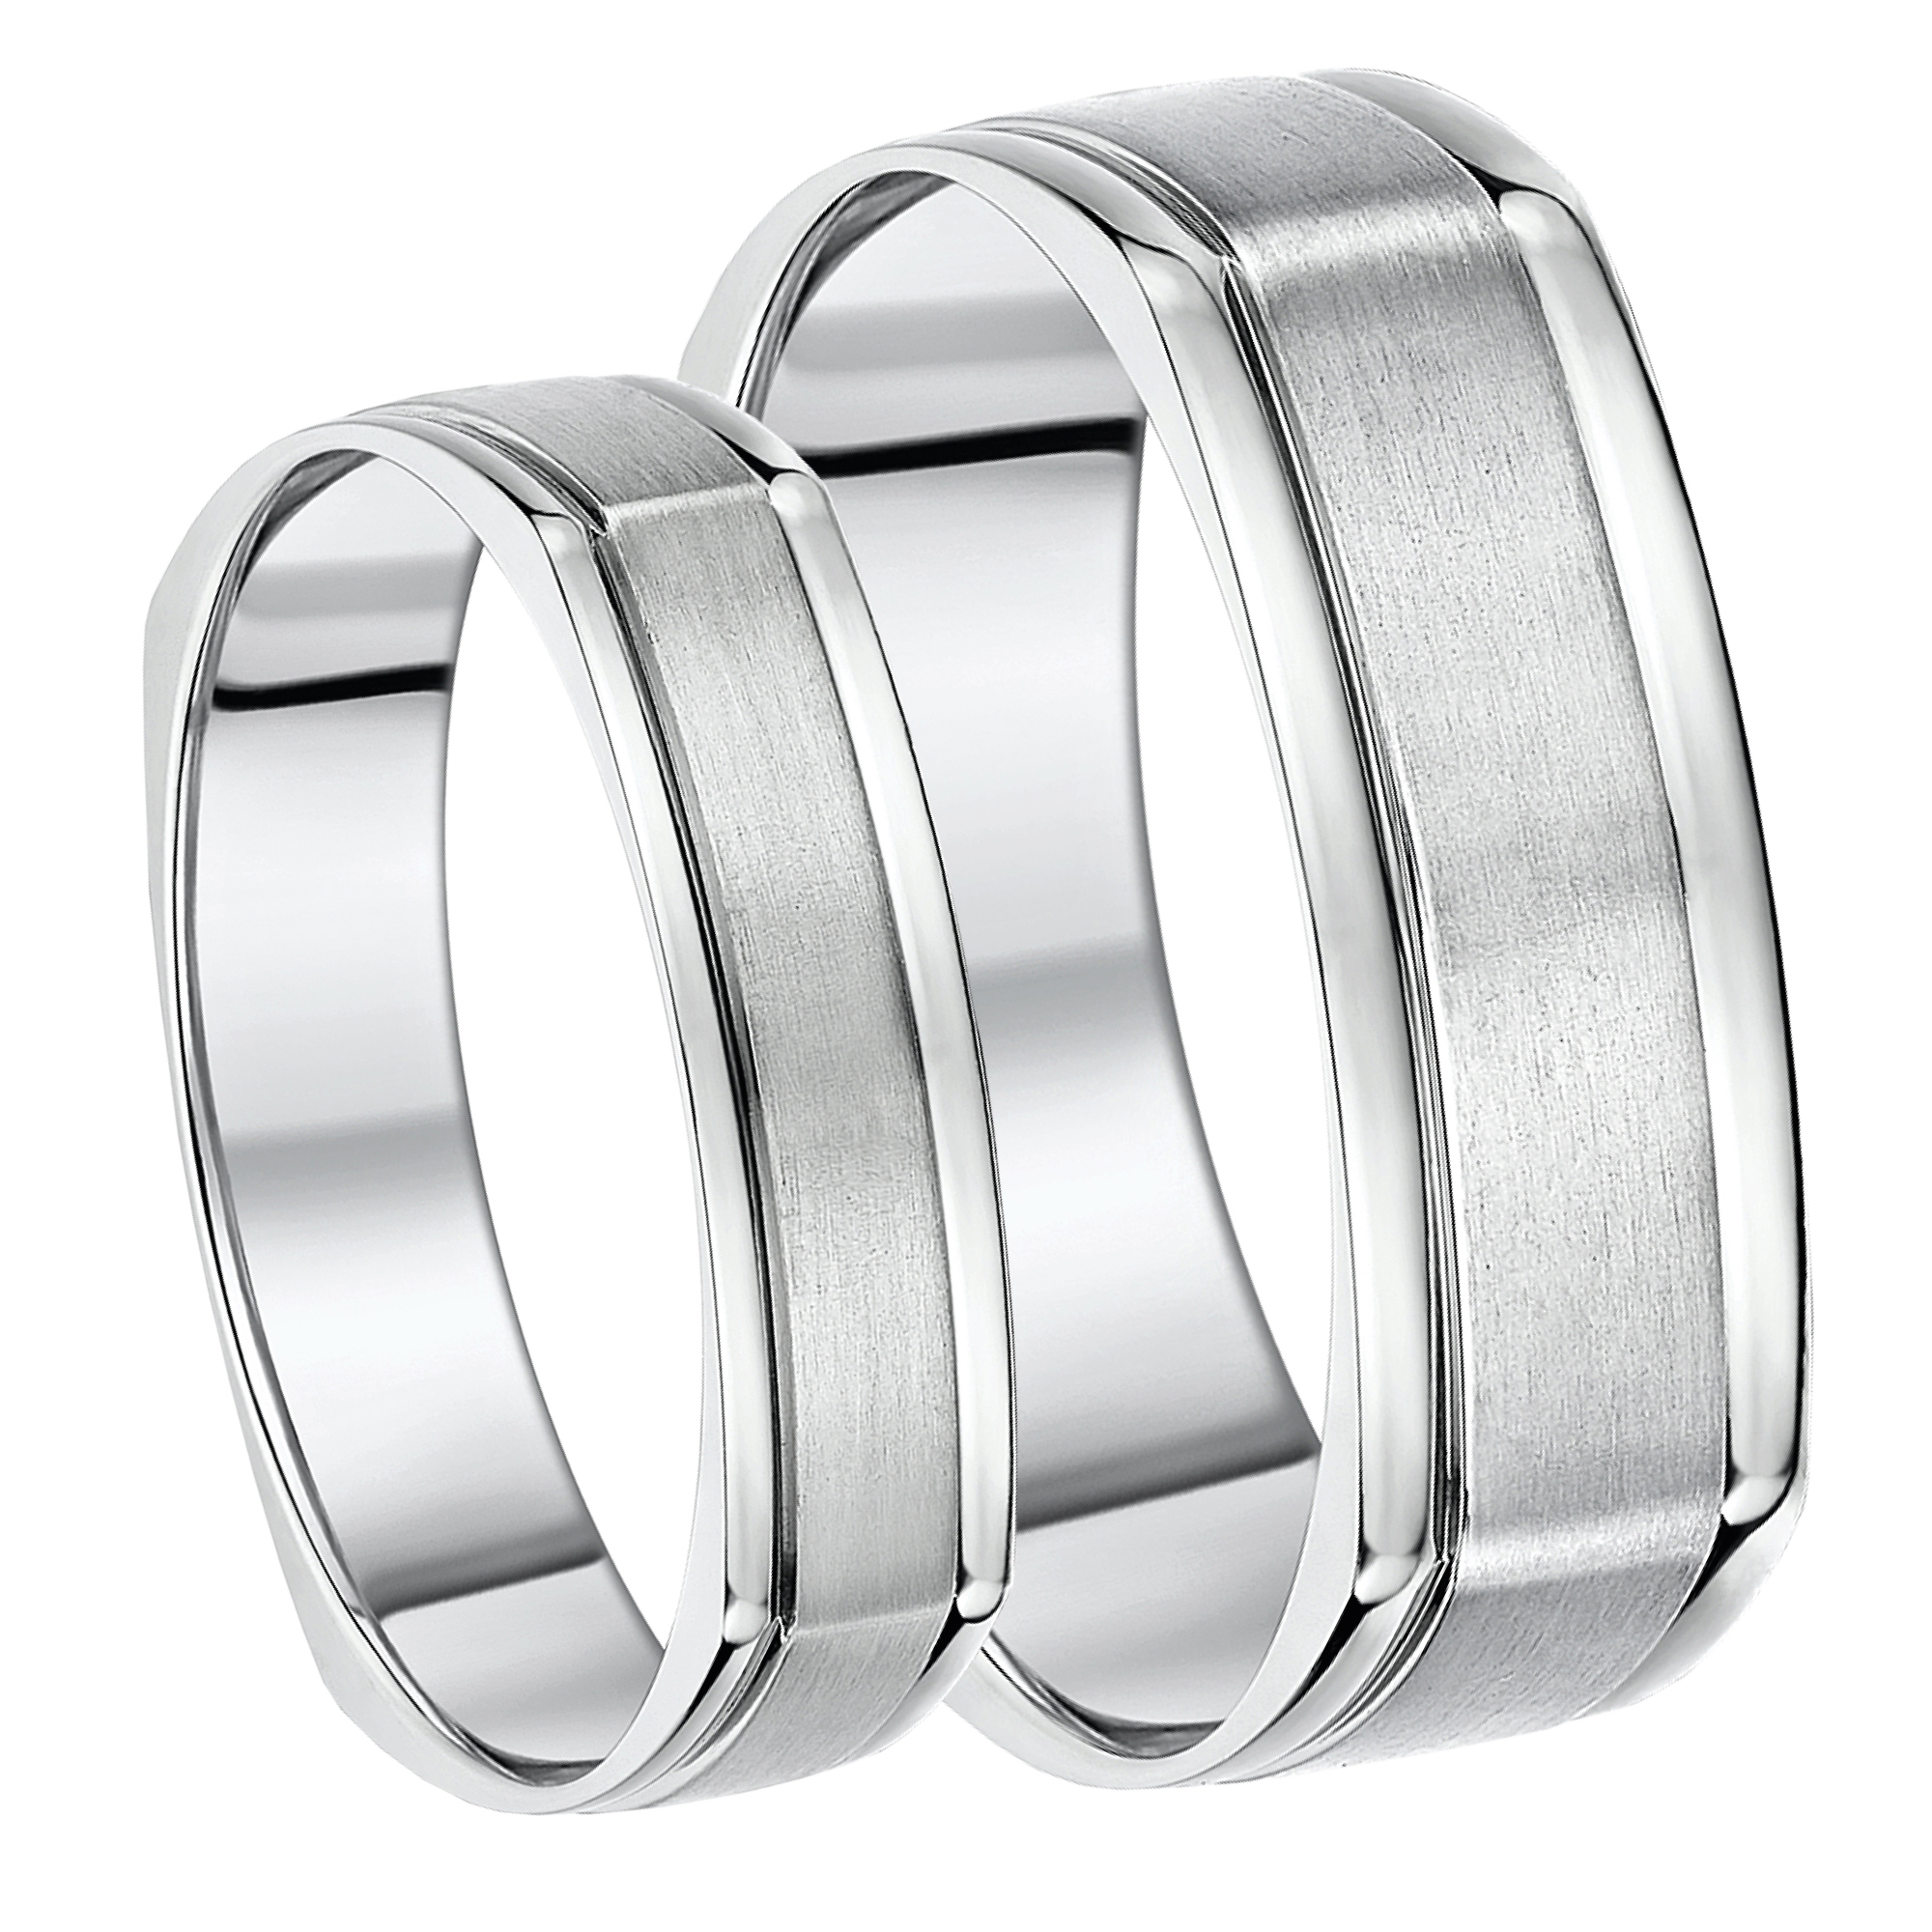 5&7mm His & Hers Titanium Square Matt and Polished Wedding Bands